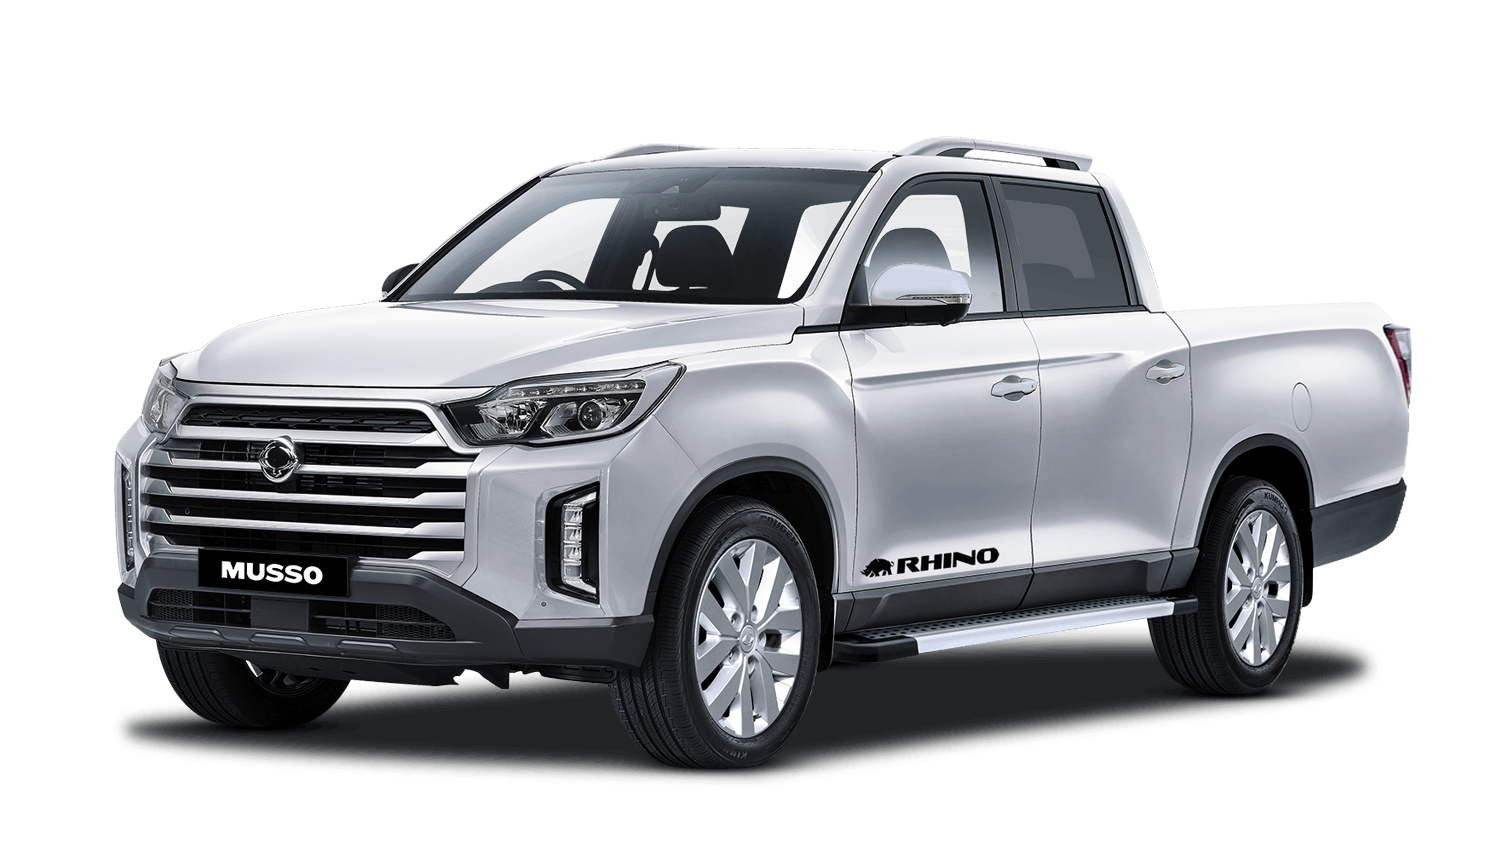 Fine Silver Ssangyong Musso